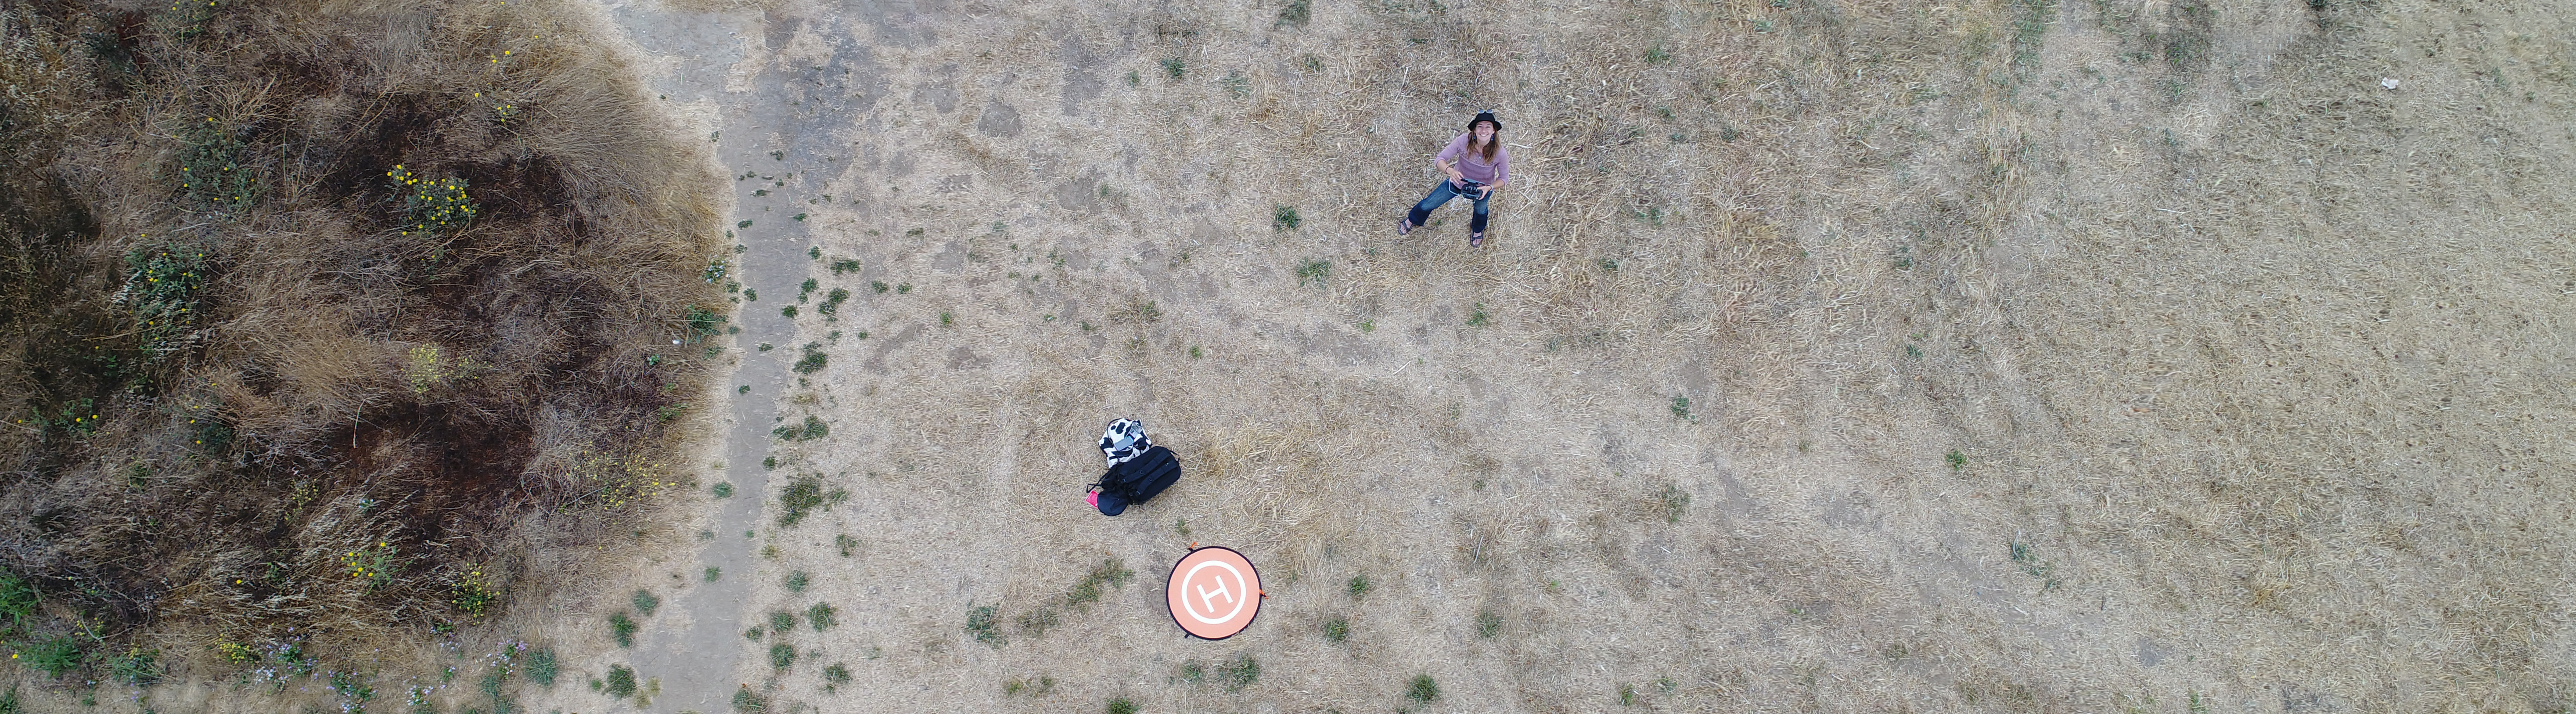 Chippie taking an aerial photo with her drone at Caesar Chavez Park in Berkeley, CA